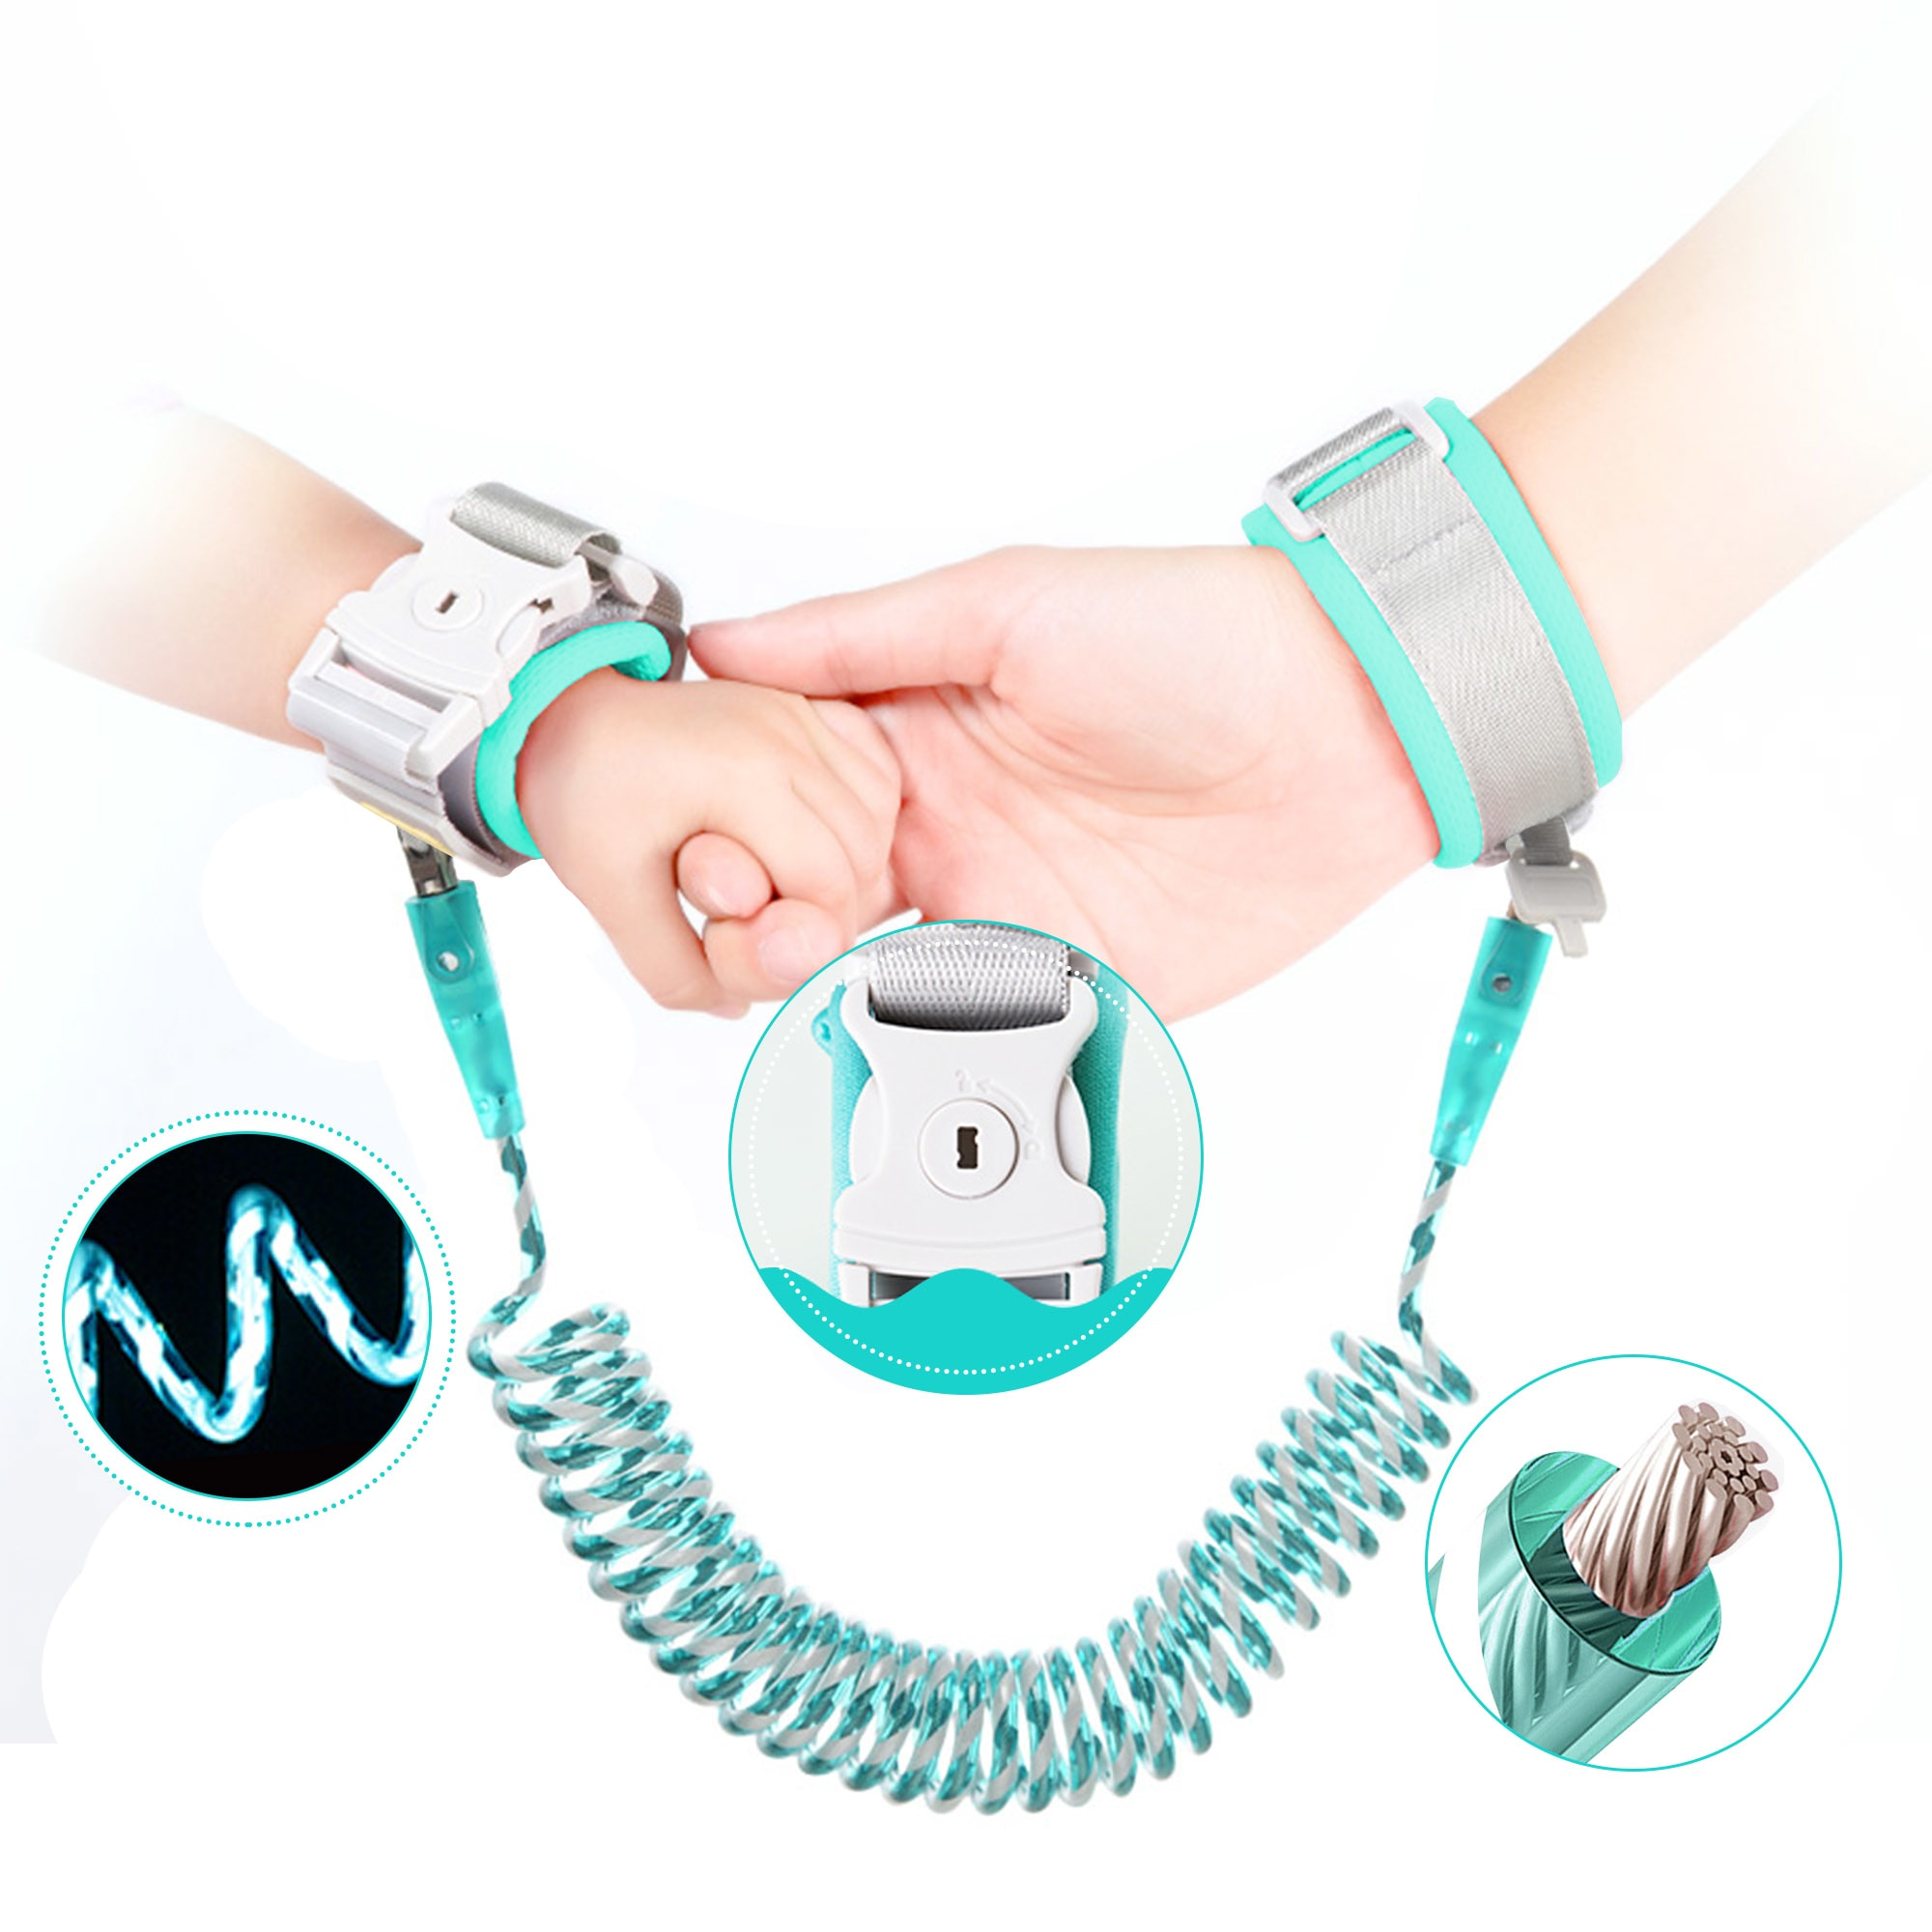 Reflective Anti Lost Wrist Link with Child Lock, Toddler Safety Harness Leash Child Anti-Lost Wristband Traction Rope for Outdoor Activities Walking Shopping